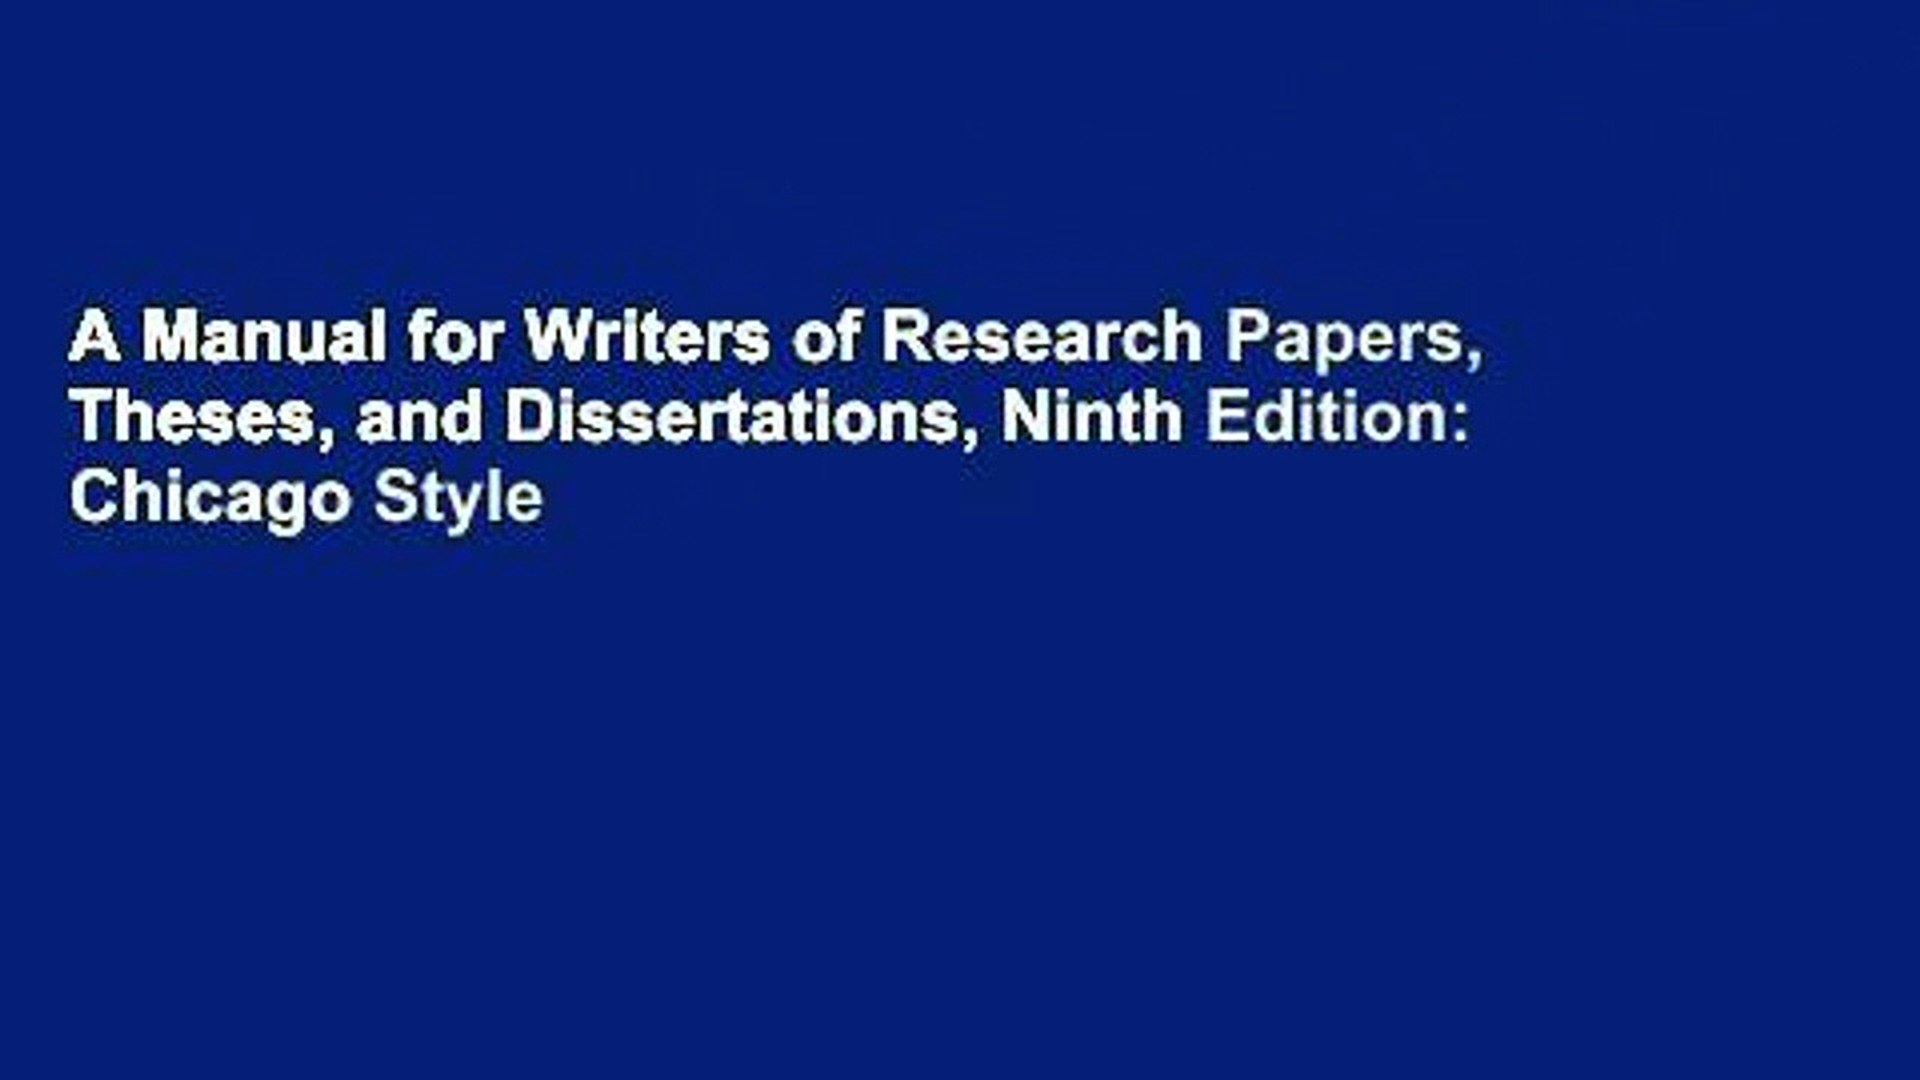 028 Manual For Writers Of Researchs Theses And Dissertations X1080 V4x Sensational A Research Papers Eighth Edition Pdf 9th 8th Full